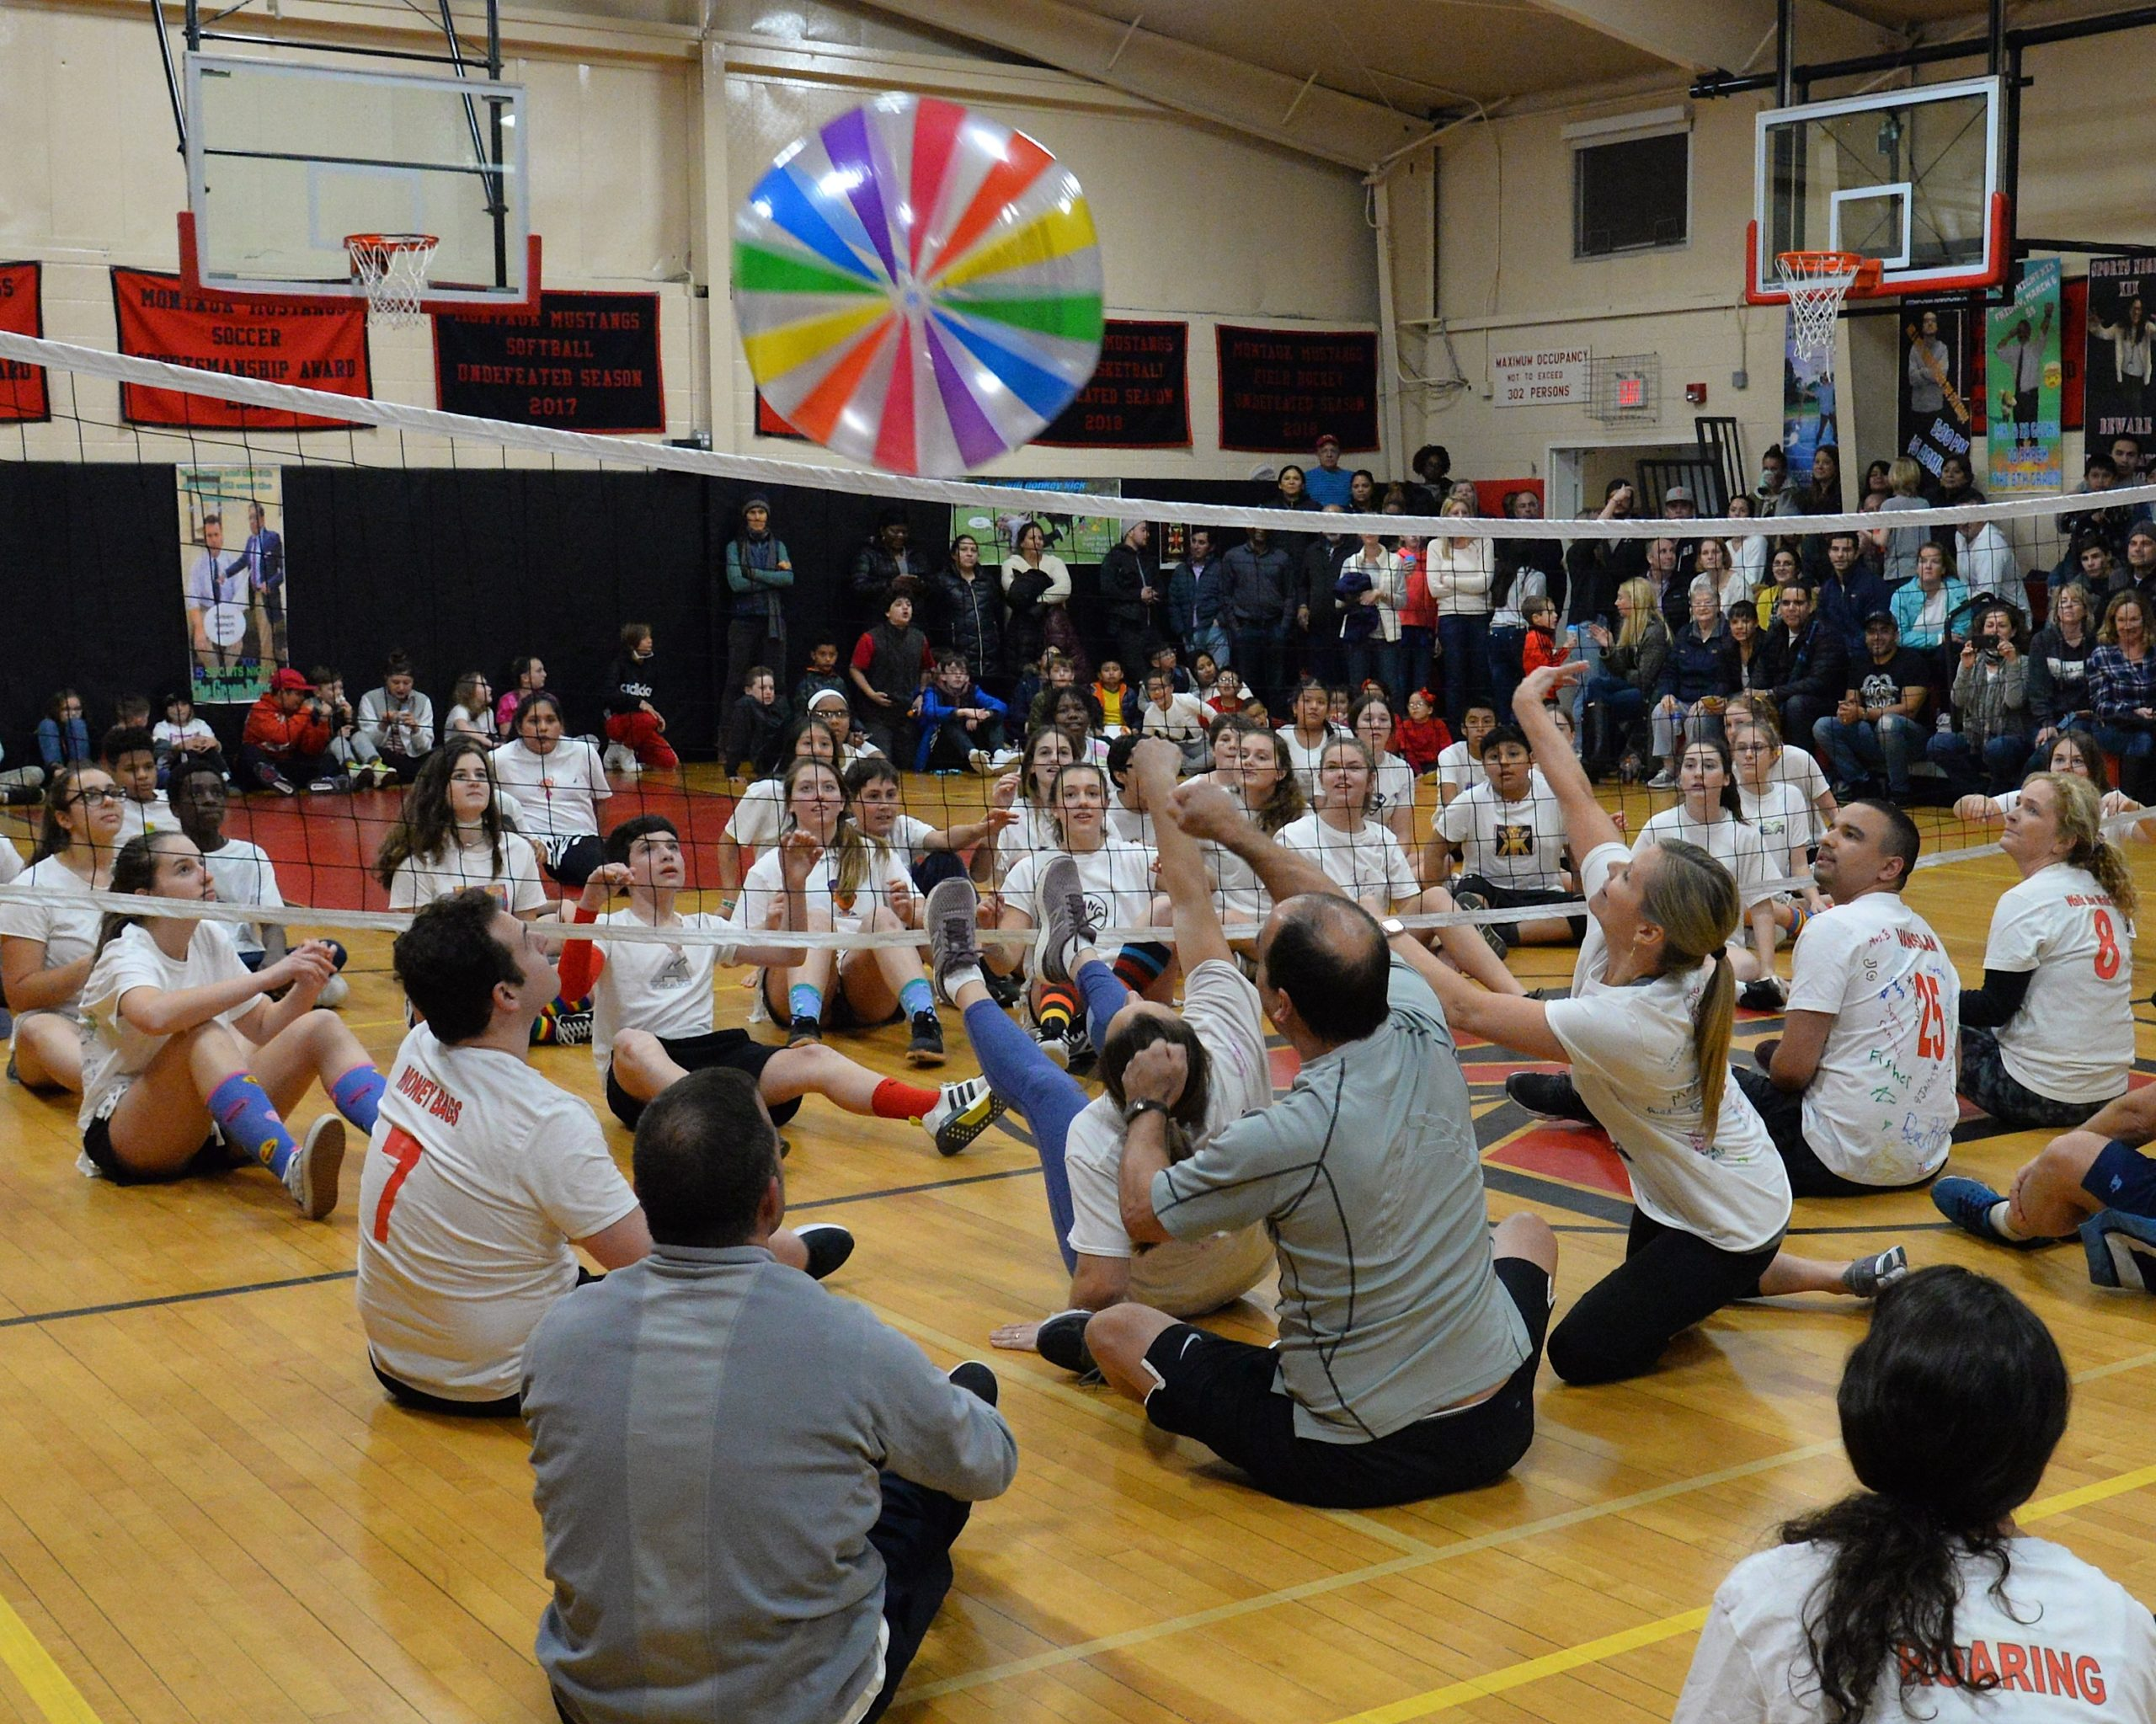 Montauk School held its Sports Night on Friday, during which teachers and eighth grade students competed in a variety of contests before a packed house of cheering students and parents. KYRIL BROMLEY